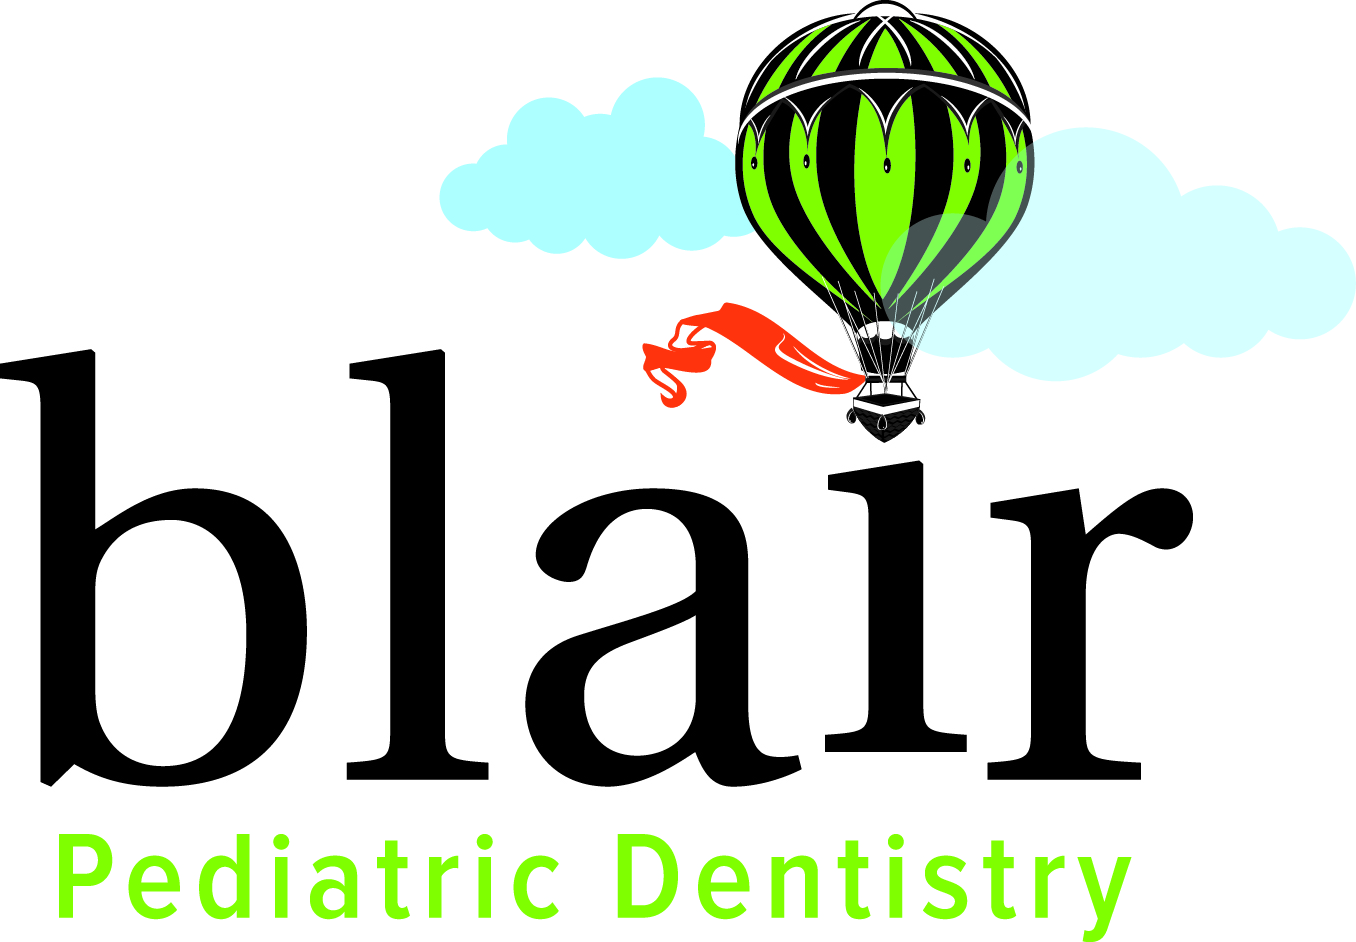 Blair Pediatric Dental | Pediatric Dentists at 5360 N Eagle Rd - Boise ID - Reviews - Photos - Phone Number